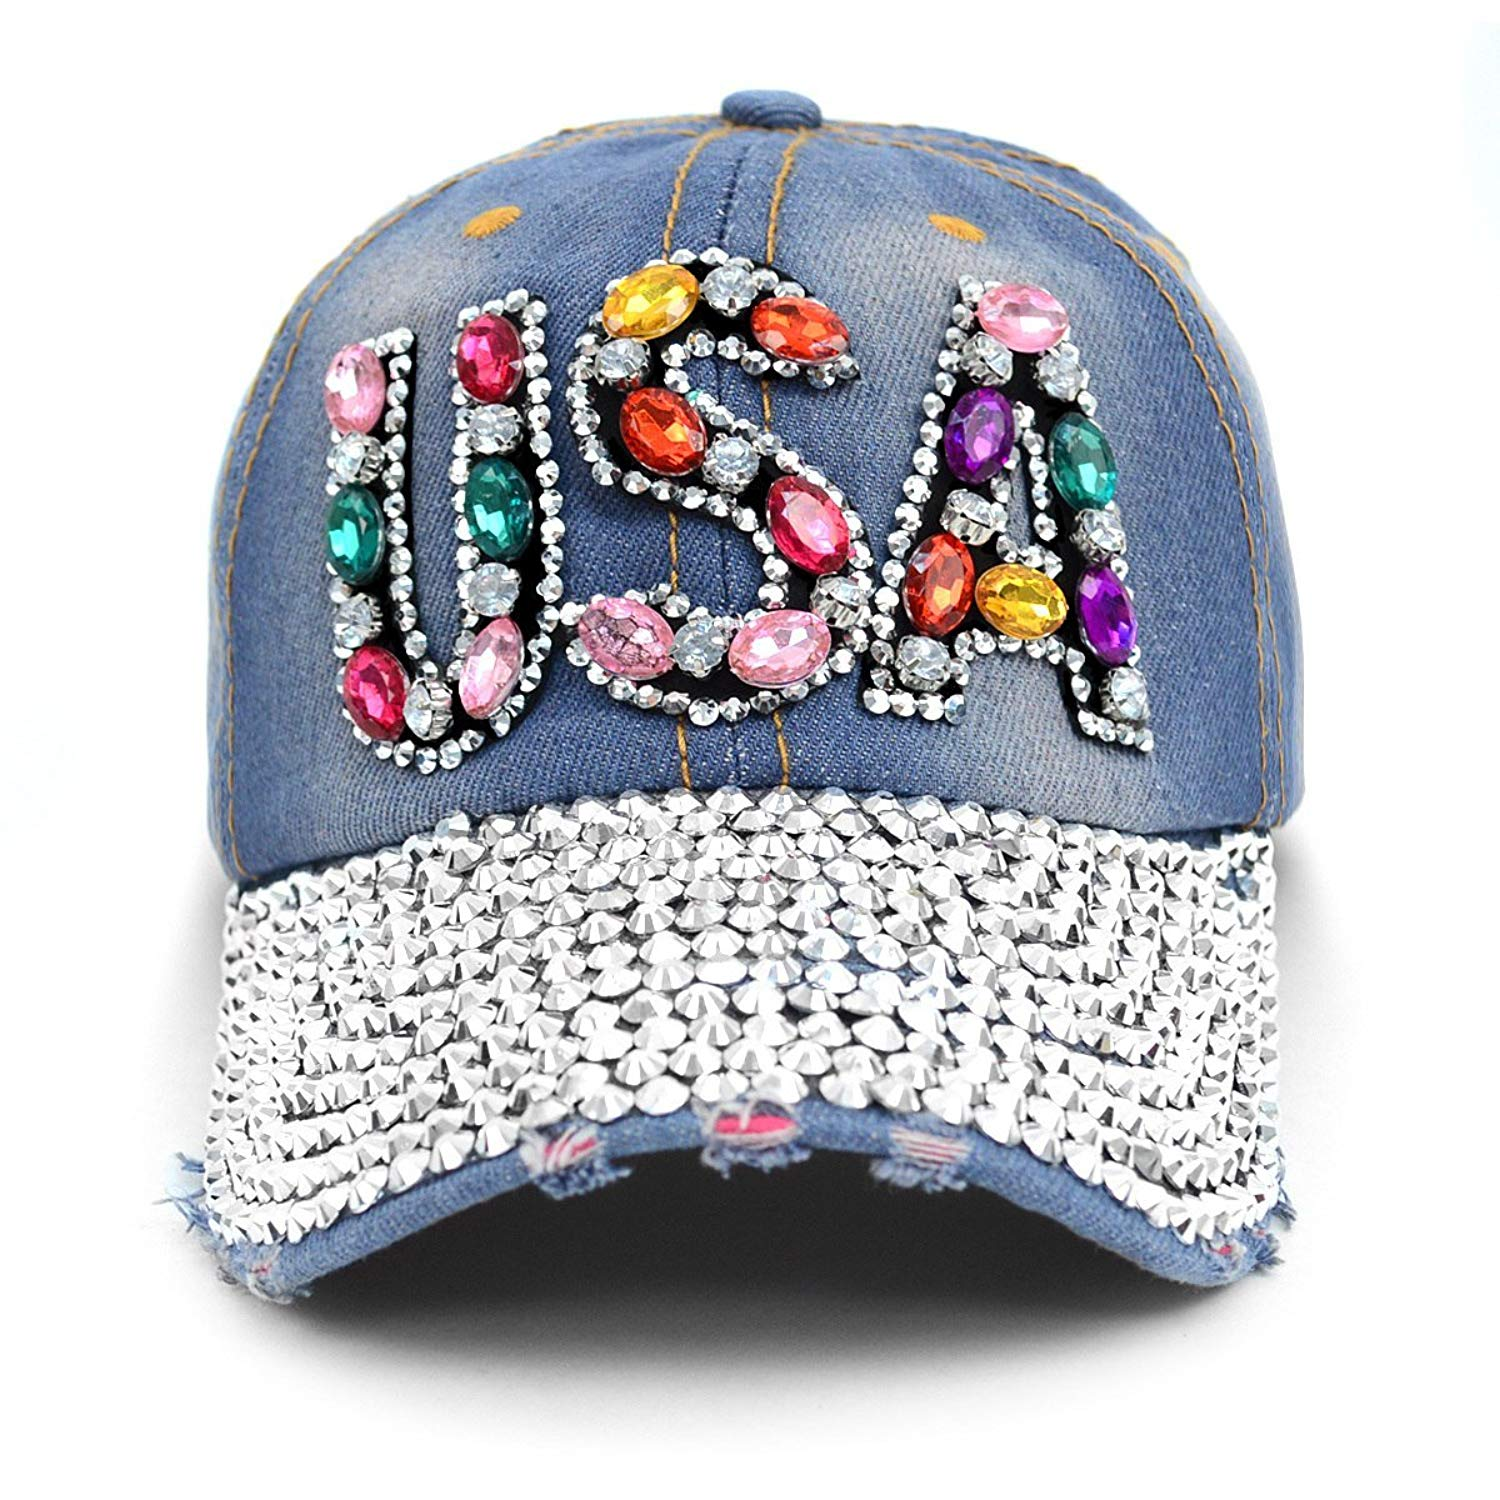 2f6aa577dc8b7 Get Quotations · Nollia USA Patriotic Baseball Cap Hat~Bling~Studs~ Rhinestone~Faux Gemstone Embellished